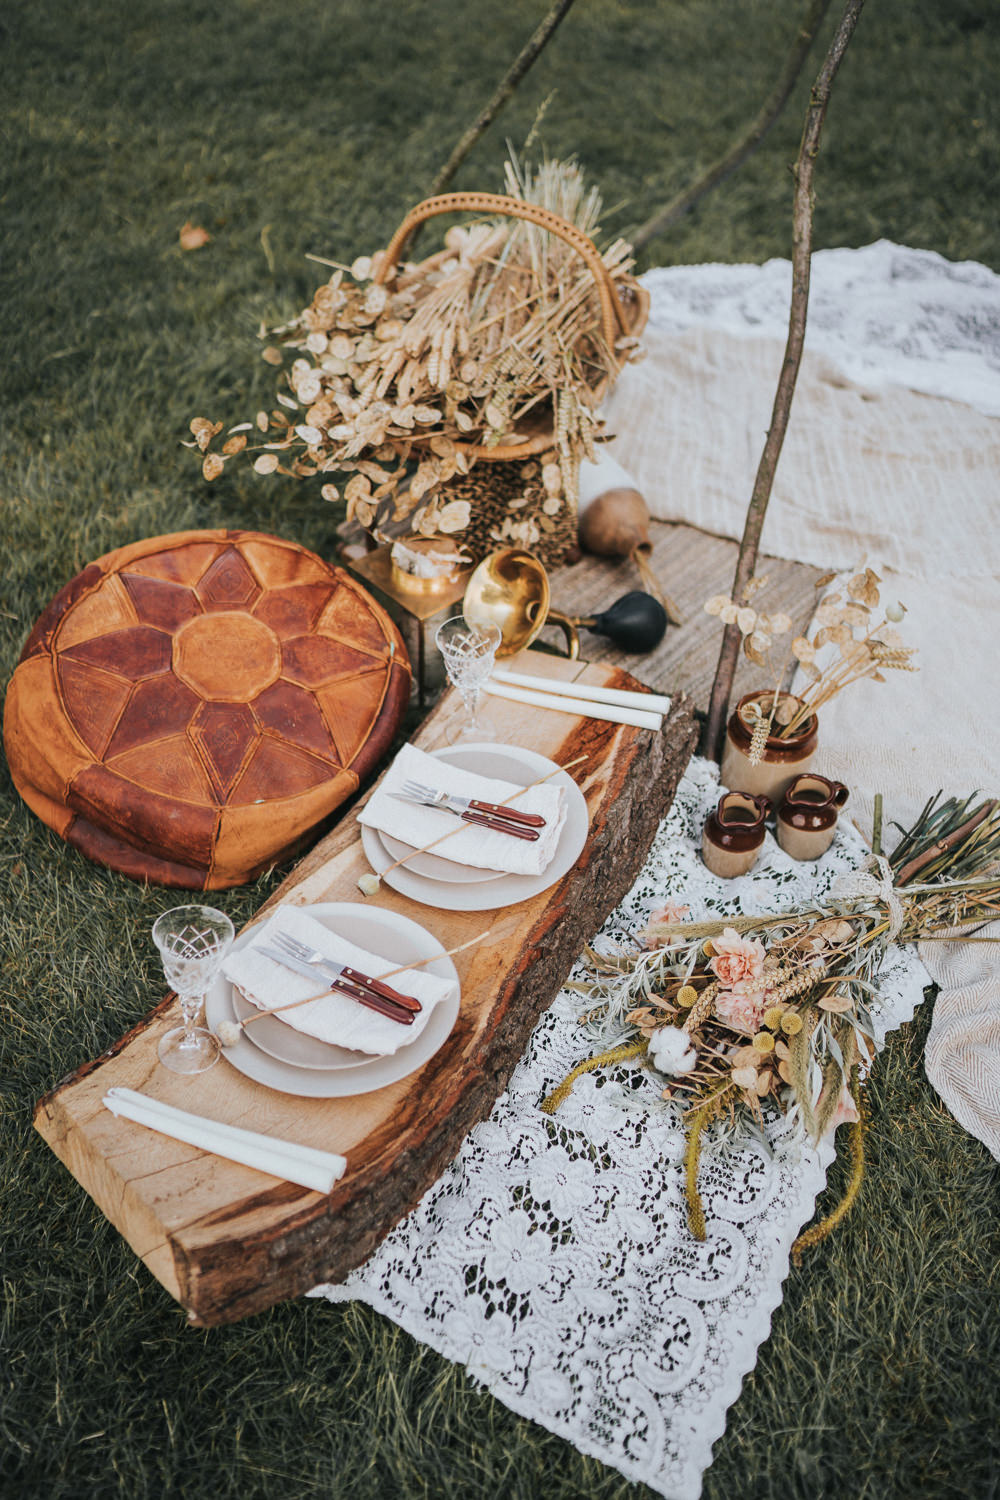 Picnic Sweetheart Table Log Slice Naked Tipi Wedding Ideas Holly Rose Stones